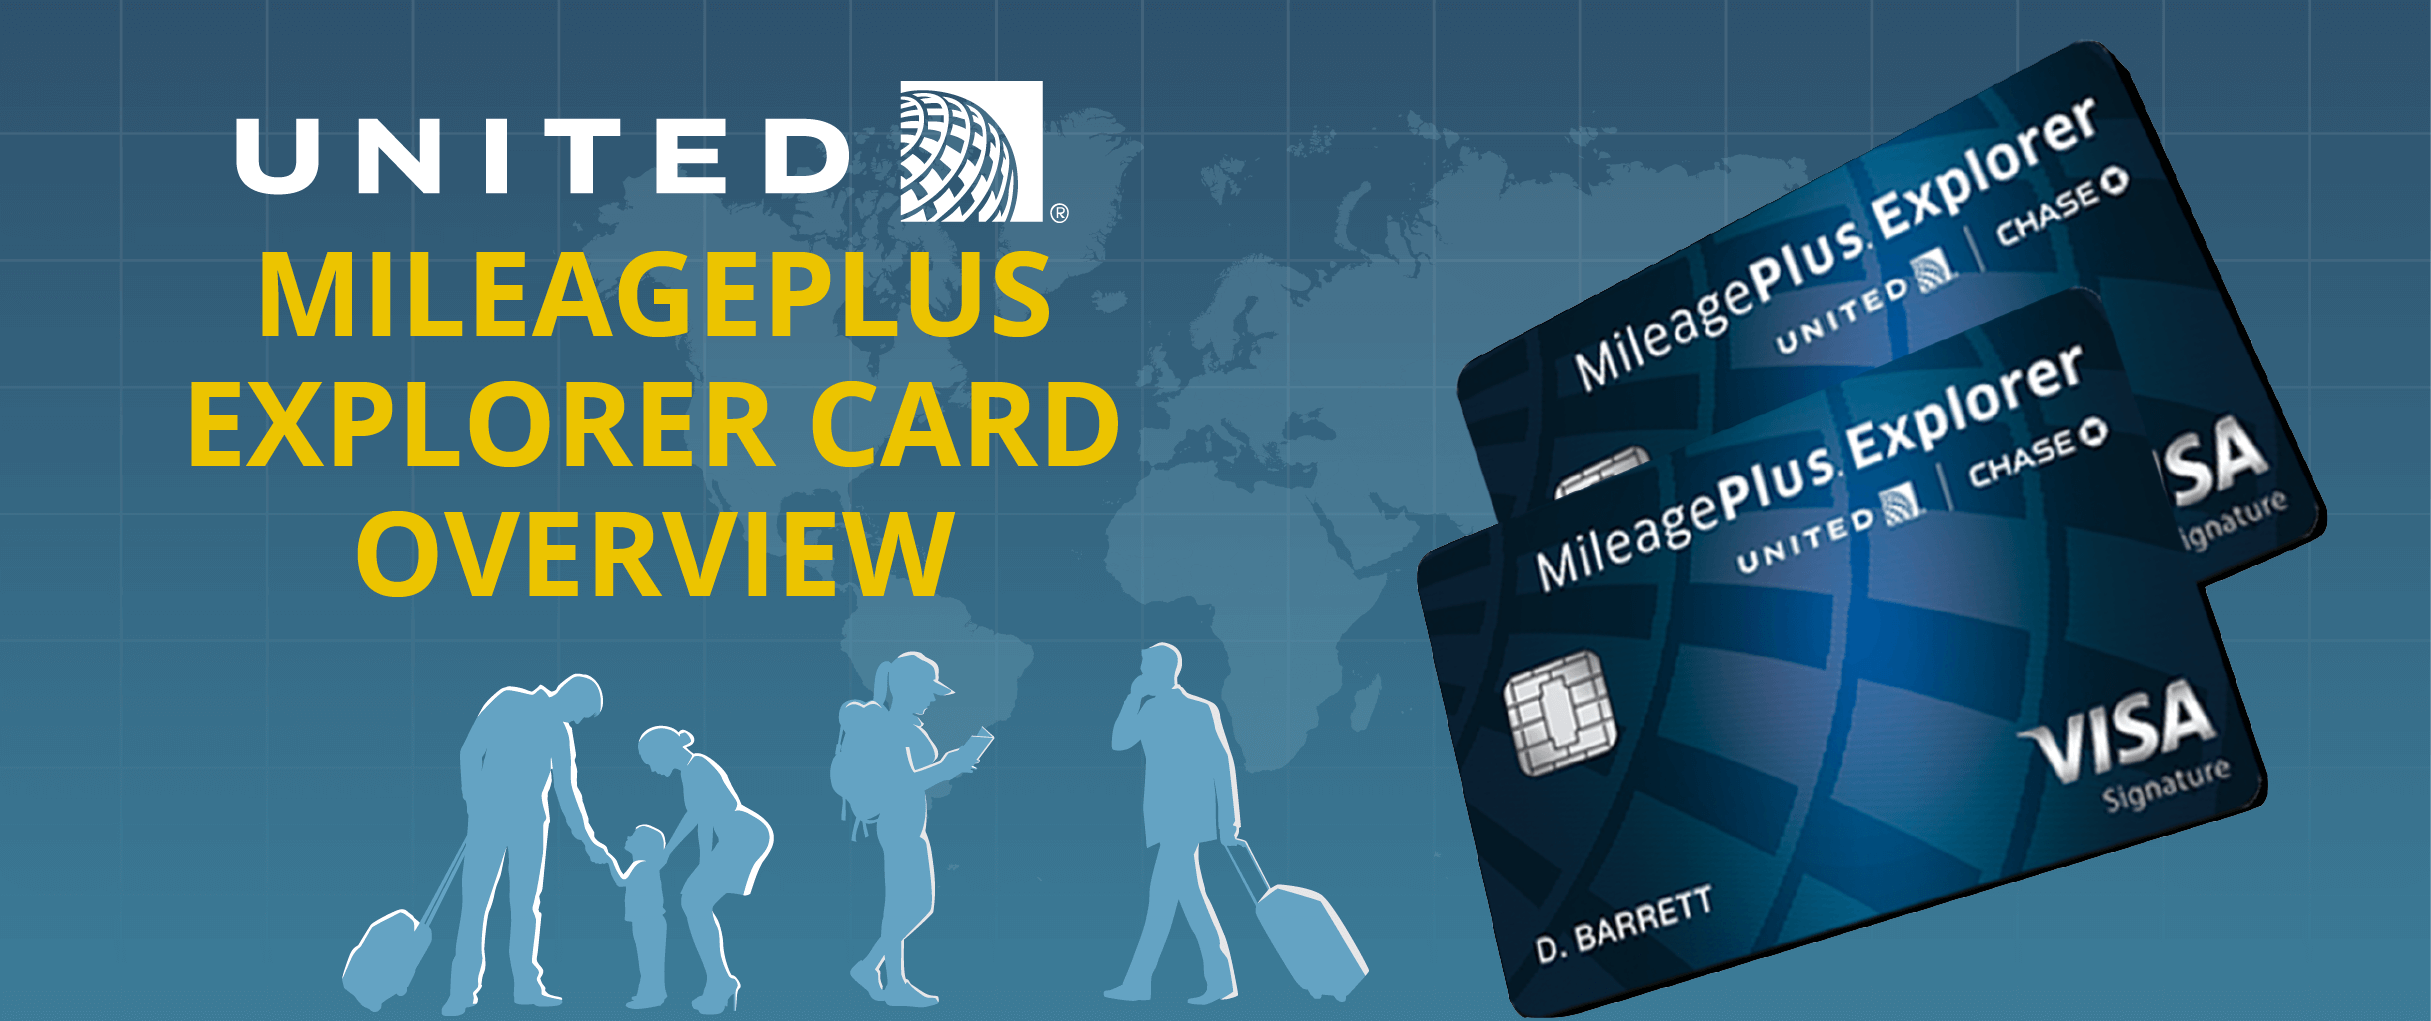 United Mileageplus Explorer Card Car Rental Insurance